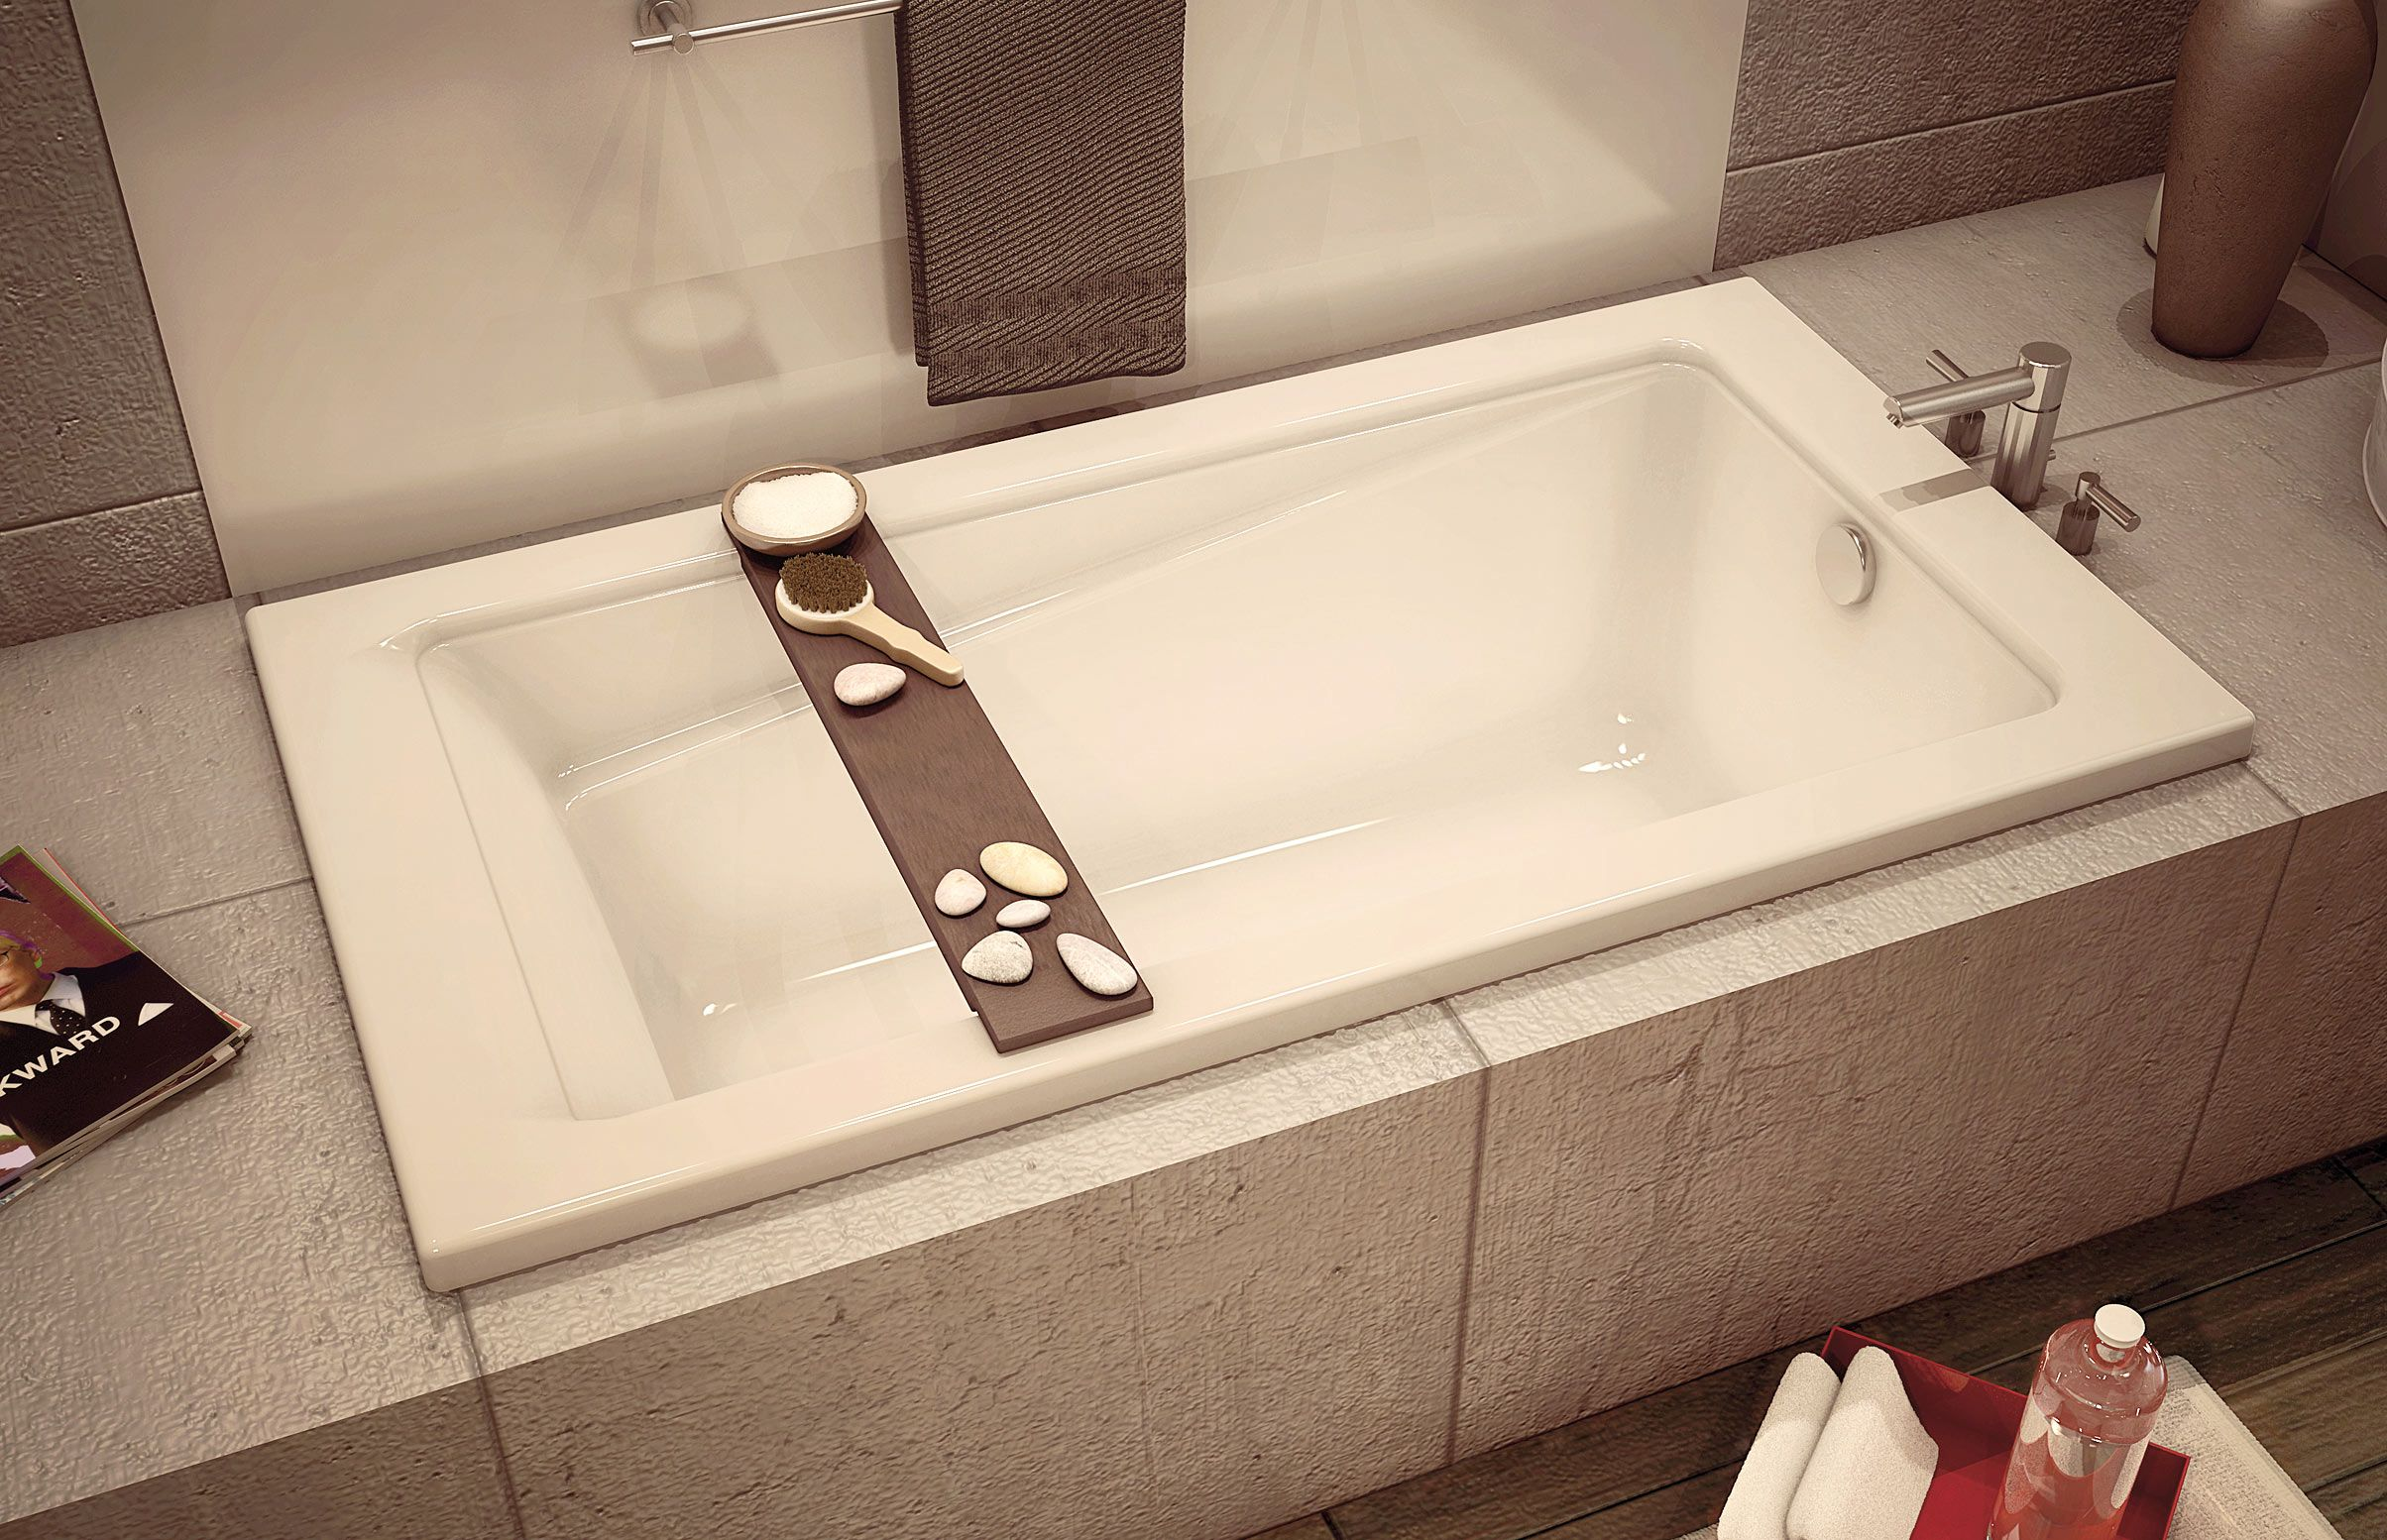 New Town 6032 Alcove or Drop-in bathtub - Advanta by MAAX | Bathroom ...